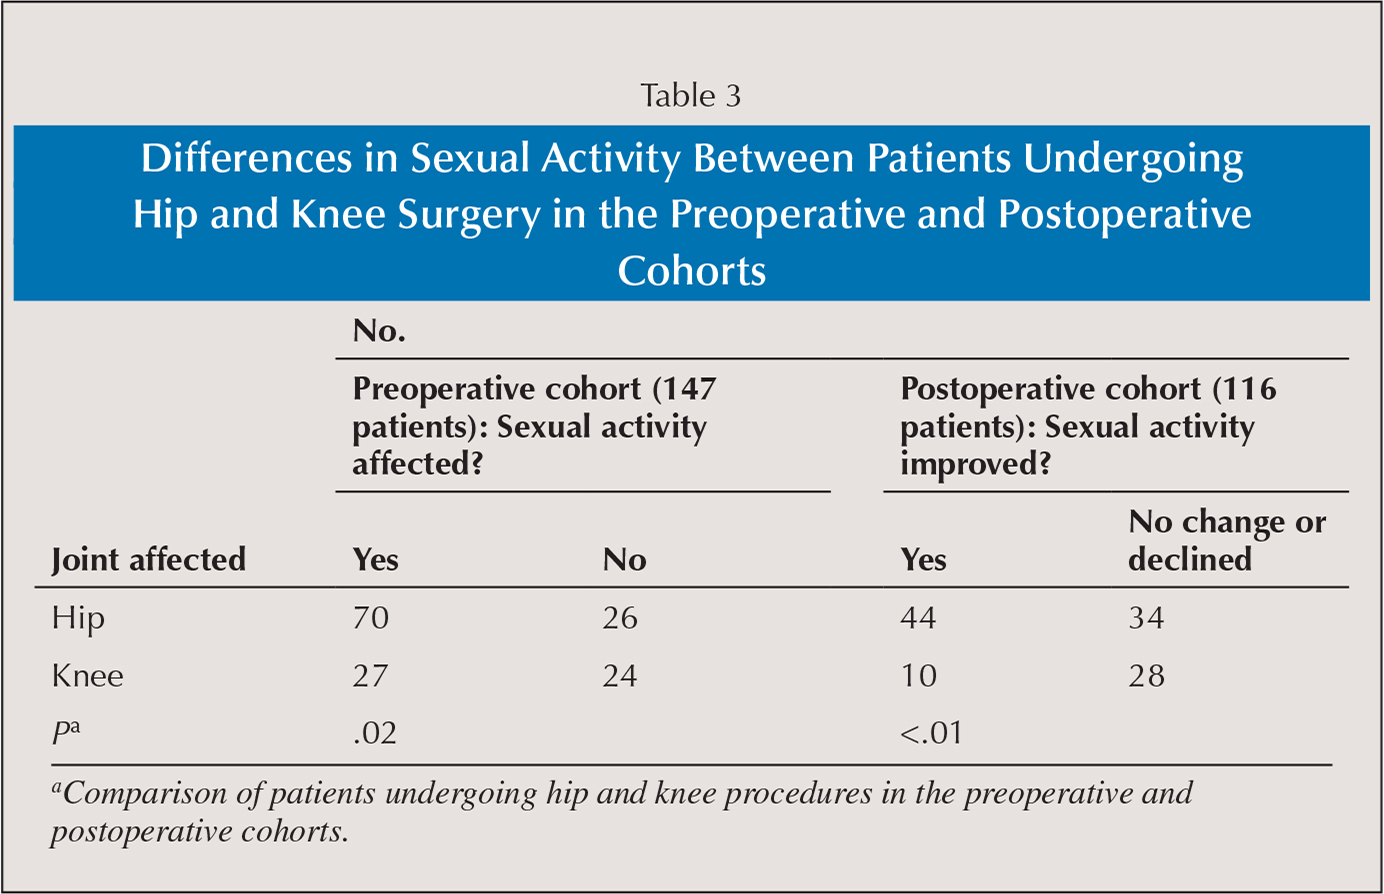 Differences in Sexual Activity Between Patients Undergoing Hip and Knee Surgery in the Preoperative and Postoperative Cohorts